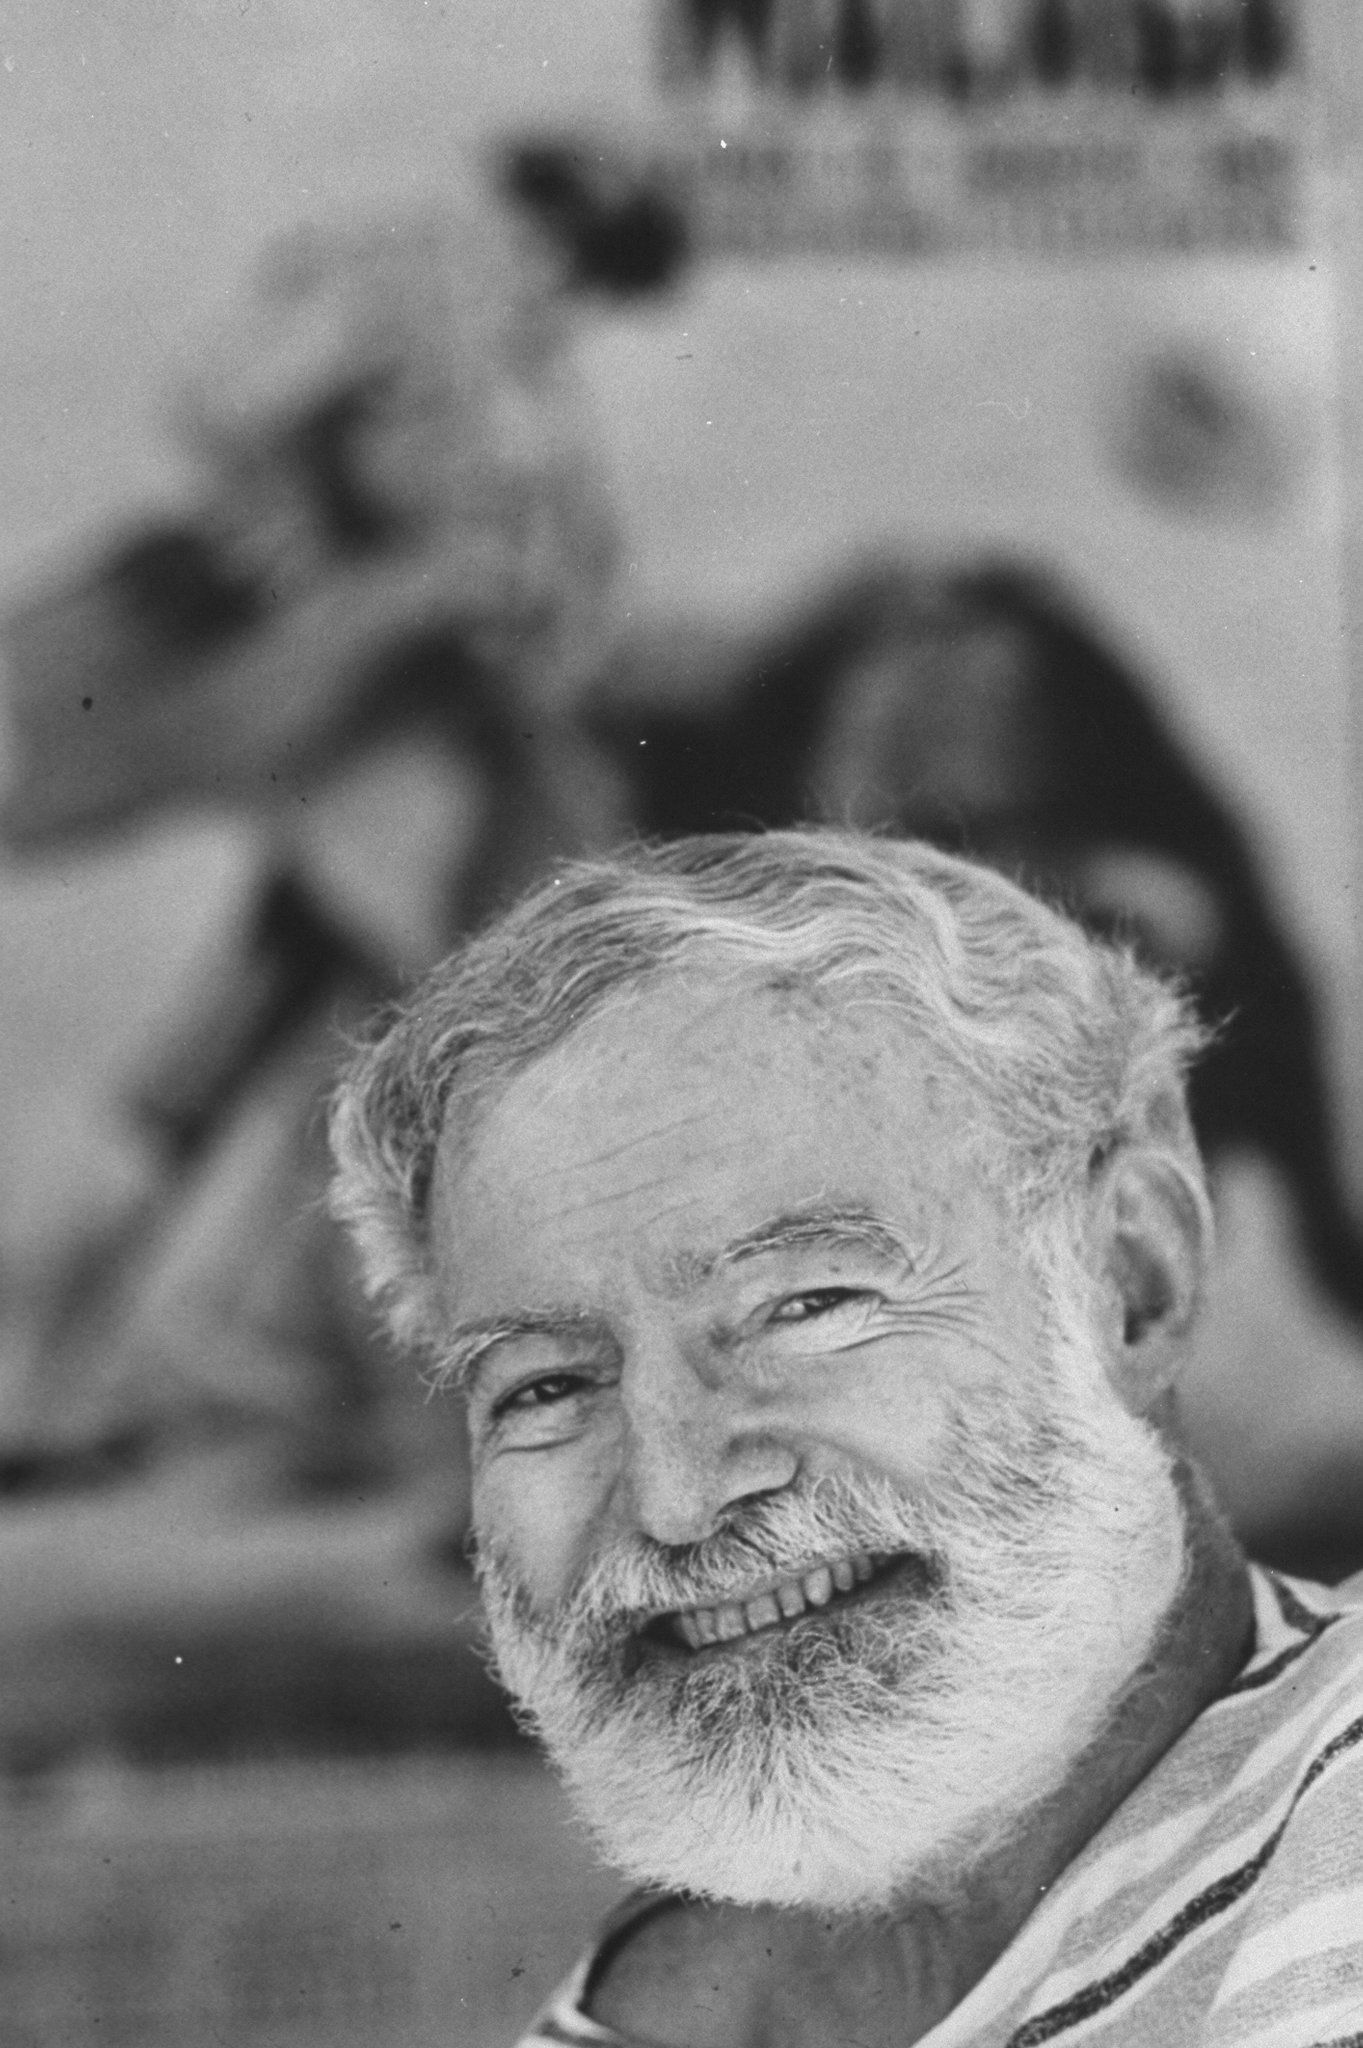 Author Ernest Hemingway covering bullfight rivalry of Spanish matadors Ordonez & Dominguin.  (Photo by Loomis Dean/The LIFE Picture Collection/Getty Images)